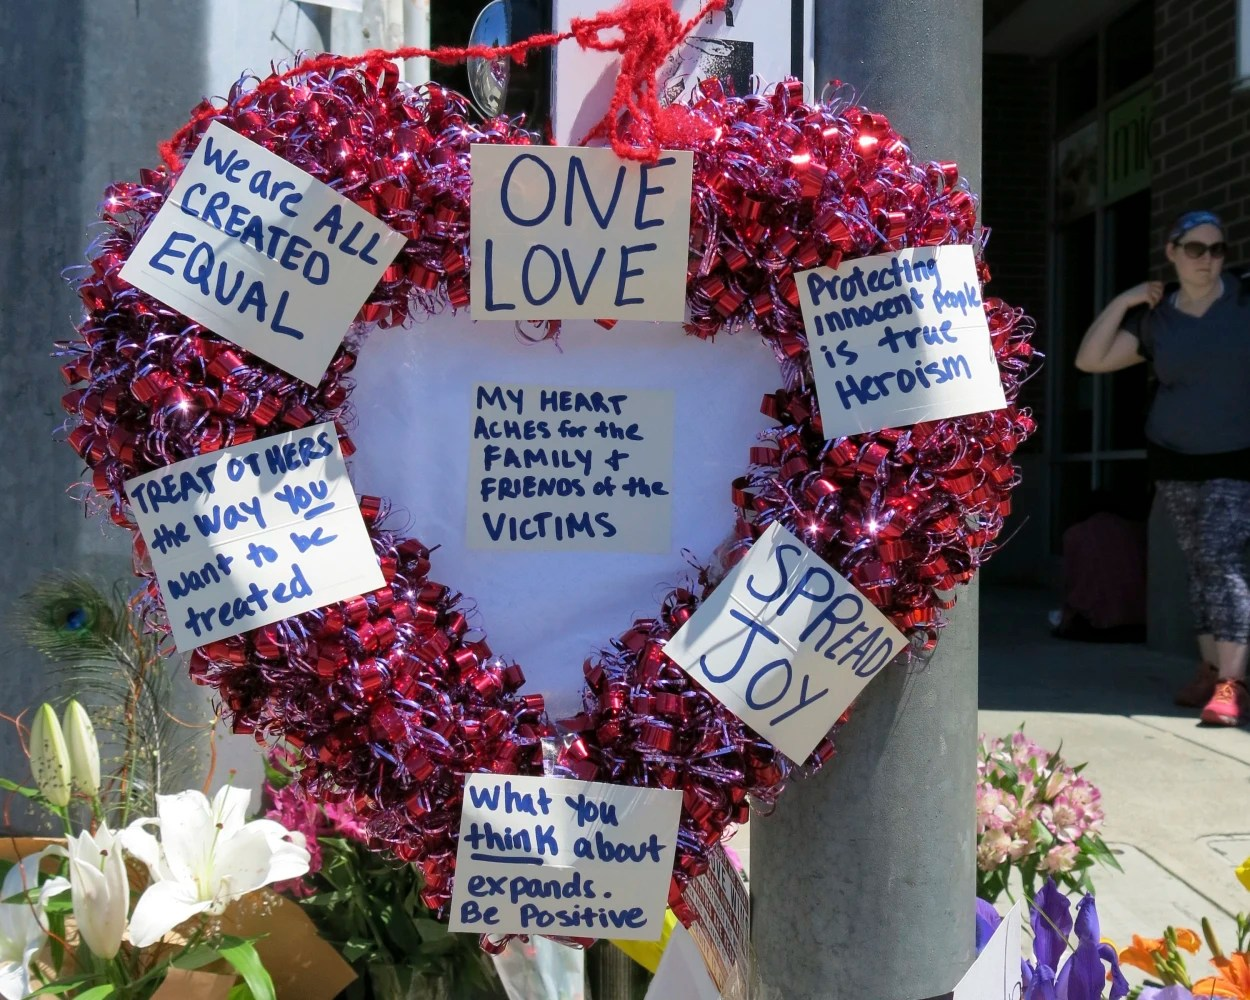 Muslims thankful for support after rant, deadly Portland attack